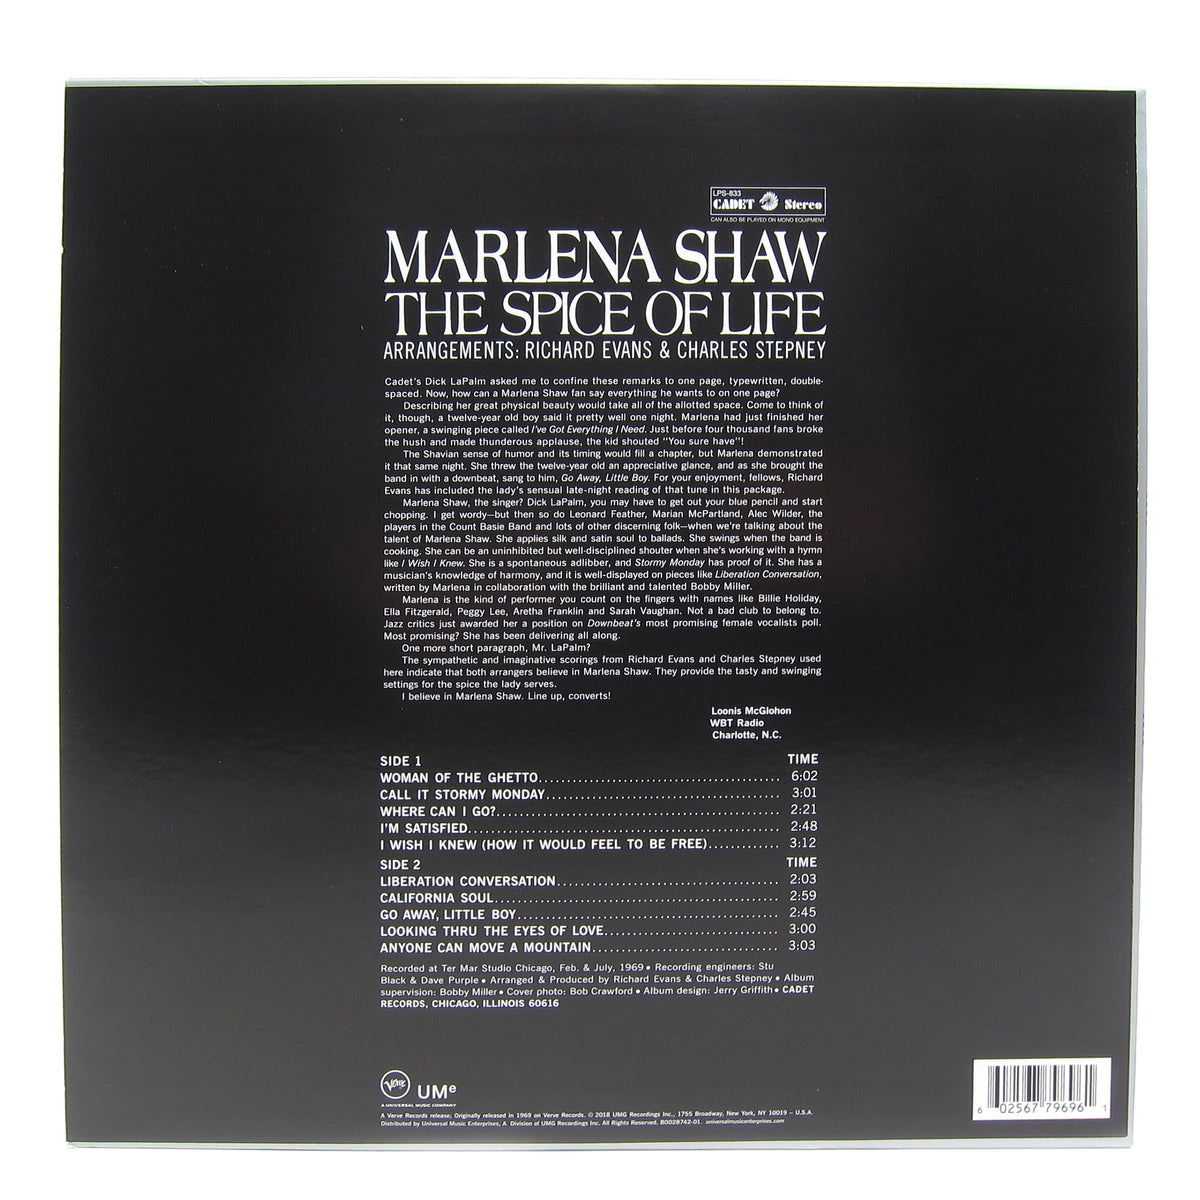 Marlena Shaw: The Spice of Life Vinyl LP